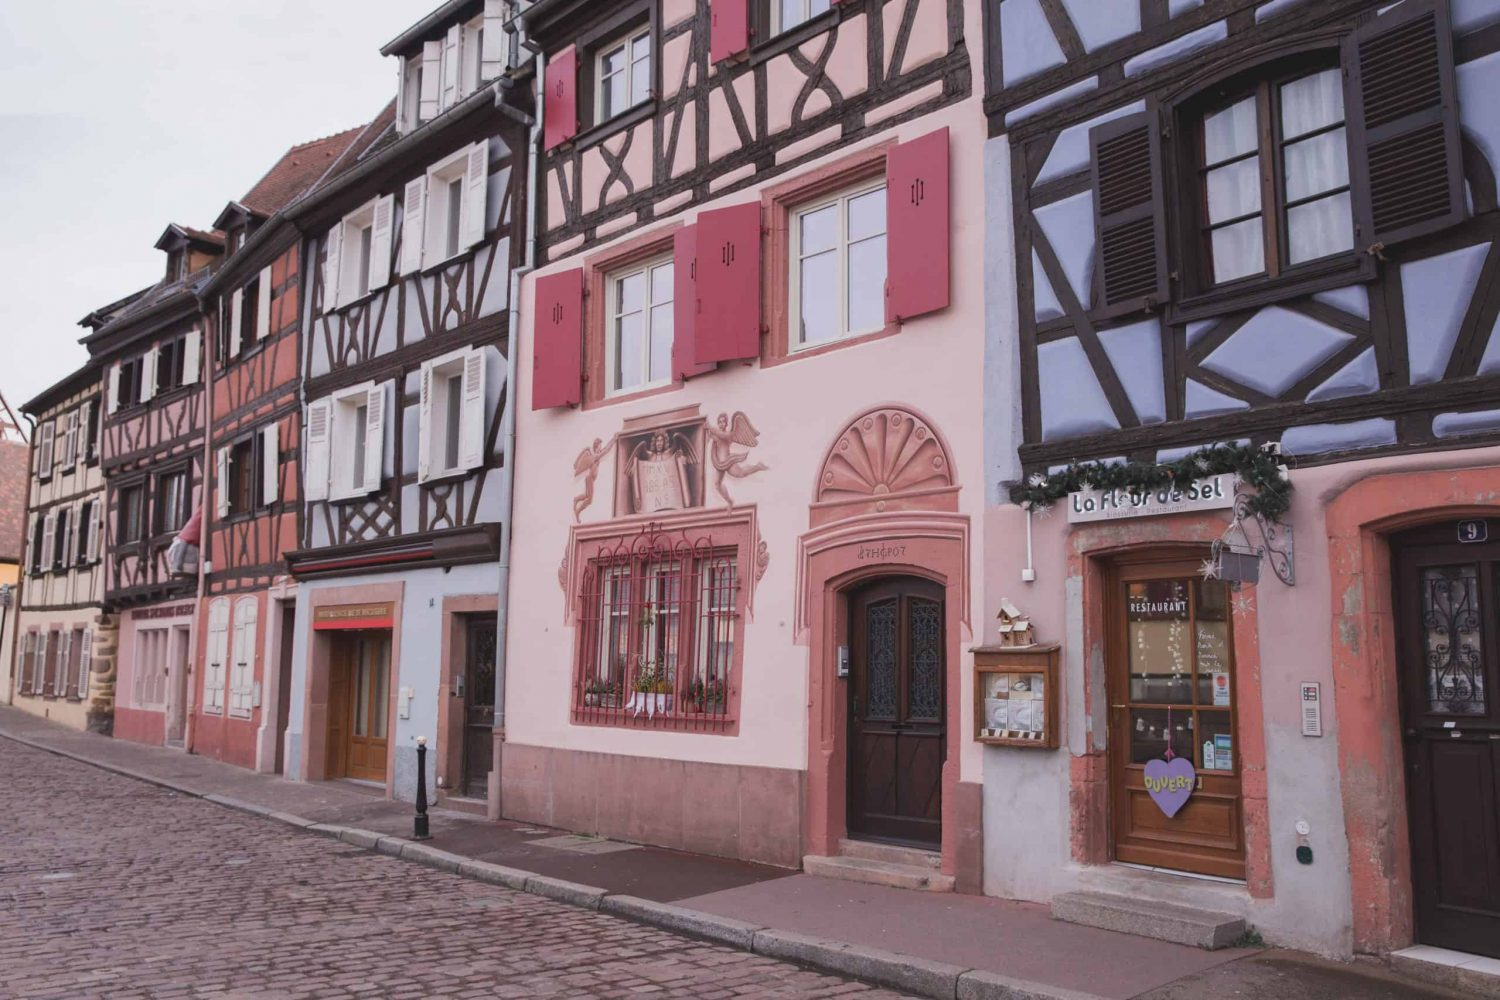 Colmar, France was one of my favorite destinations in 2019 and a great place to go in 2020!